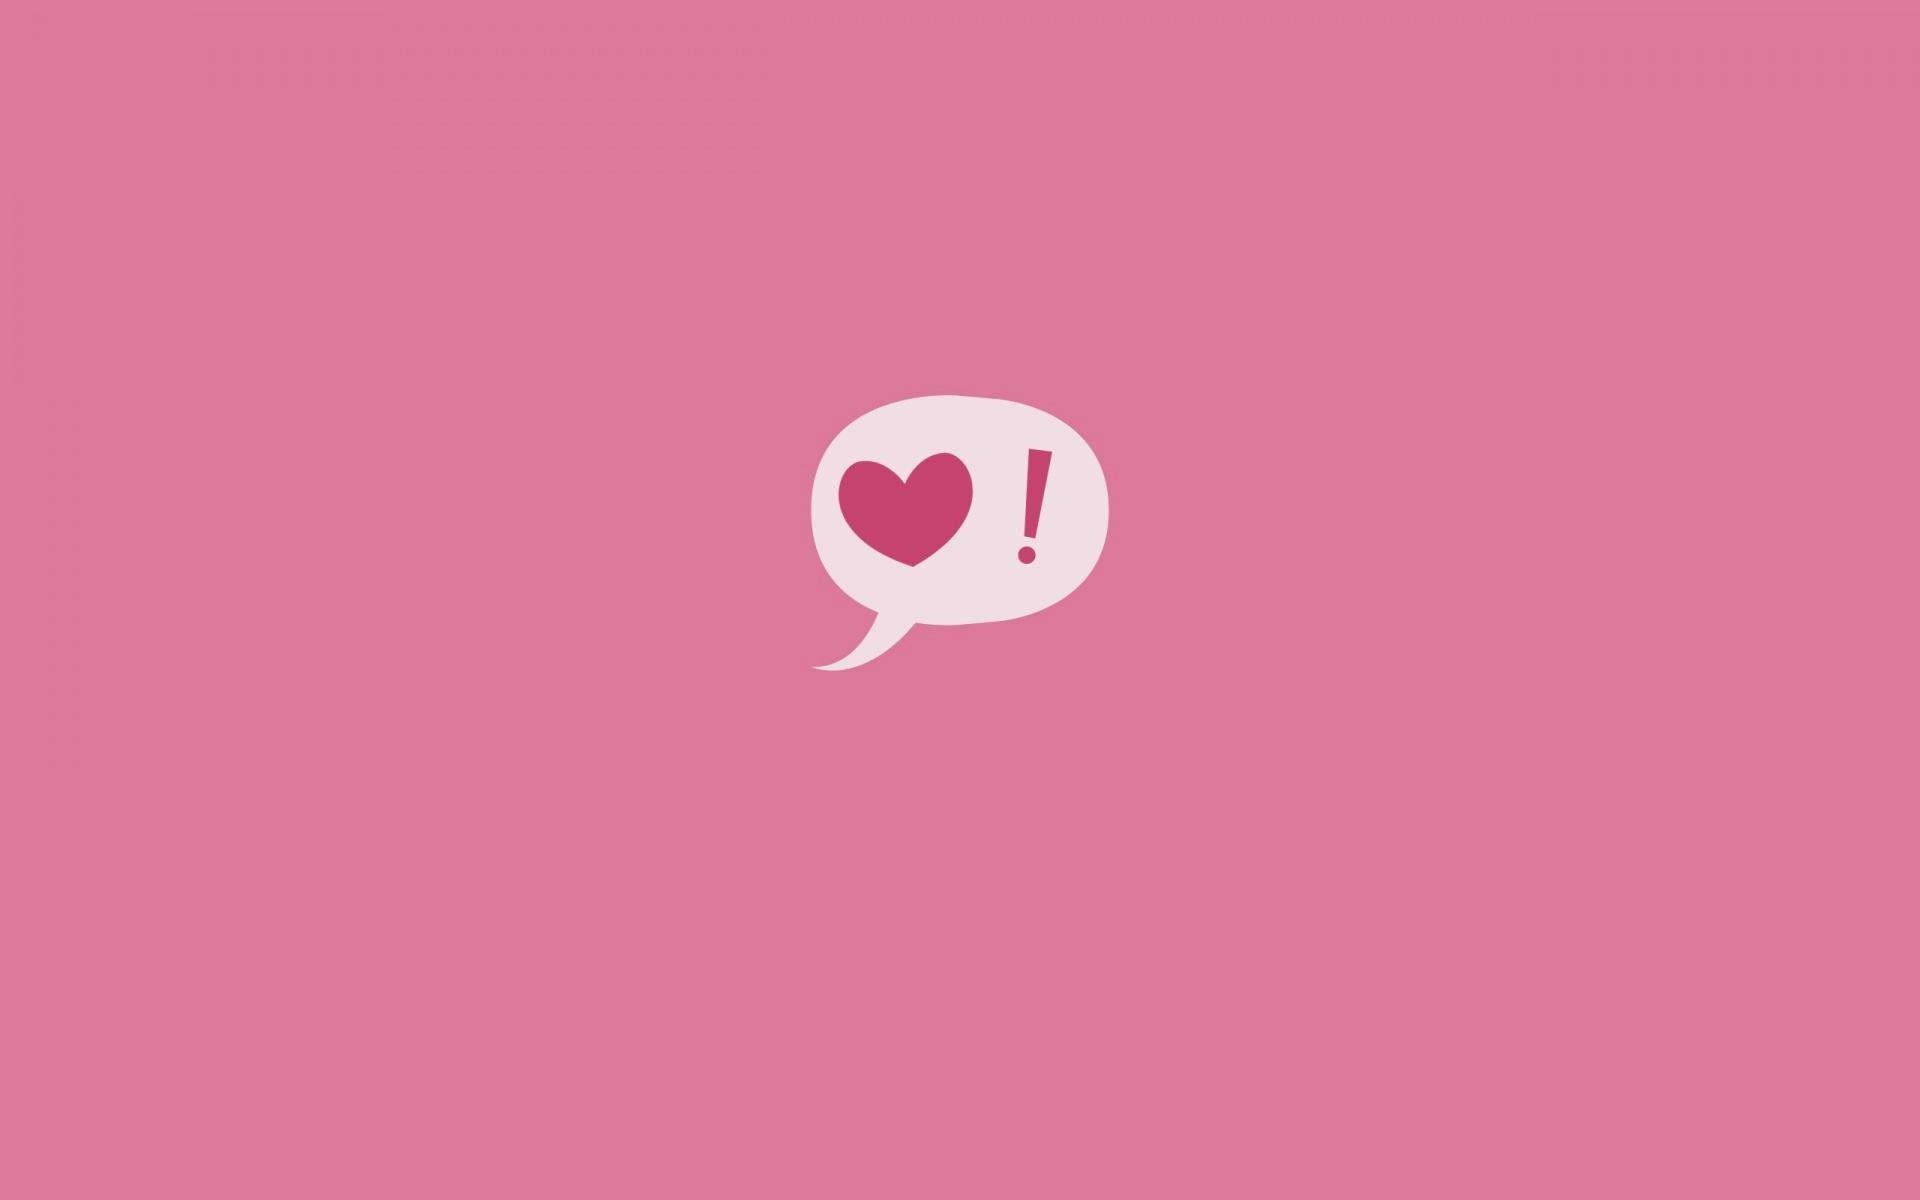 Pink Wallpaper Hd Collection Cute Wallpapers Love Wallpaper Pink Wallpaper